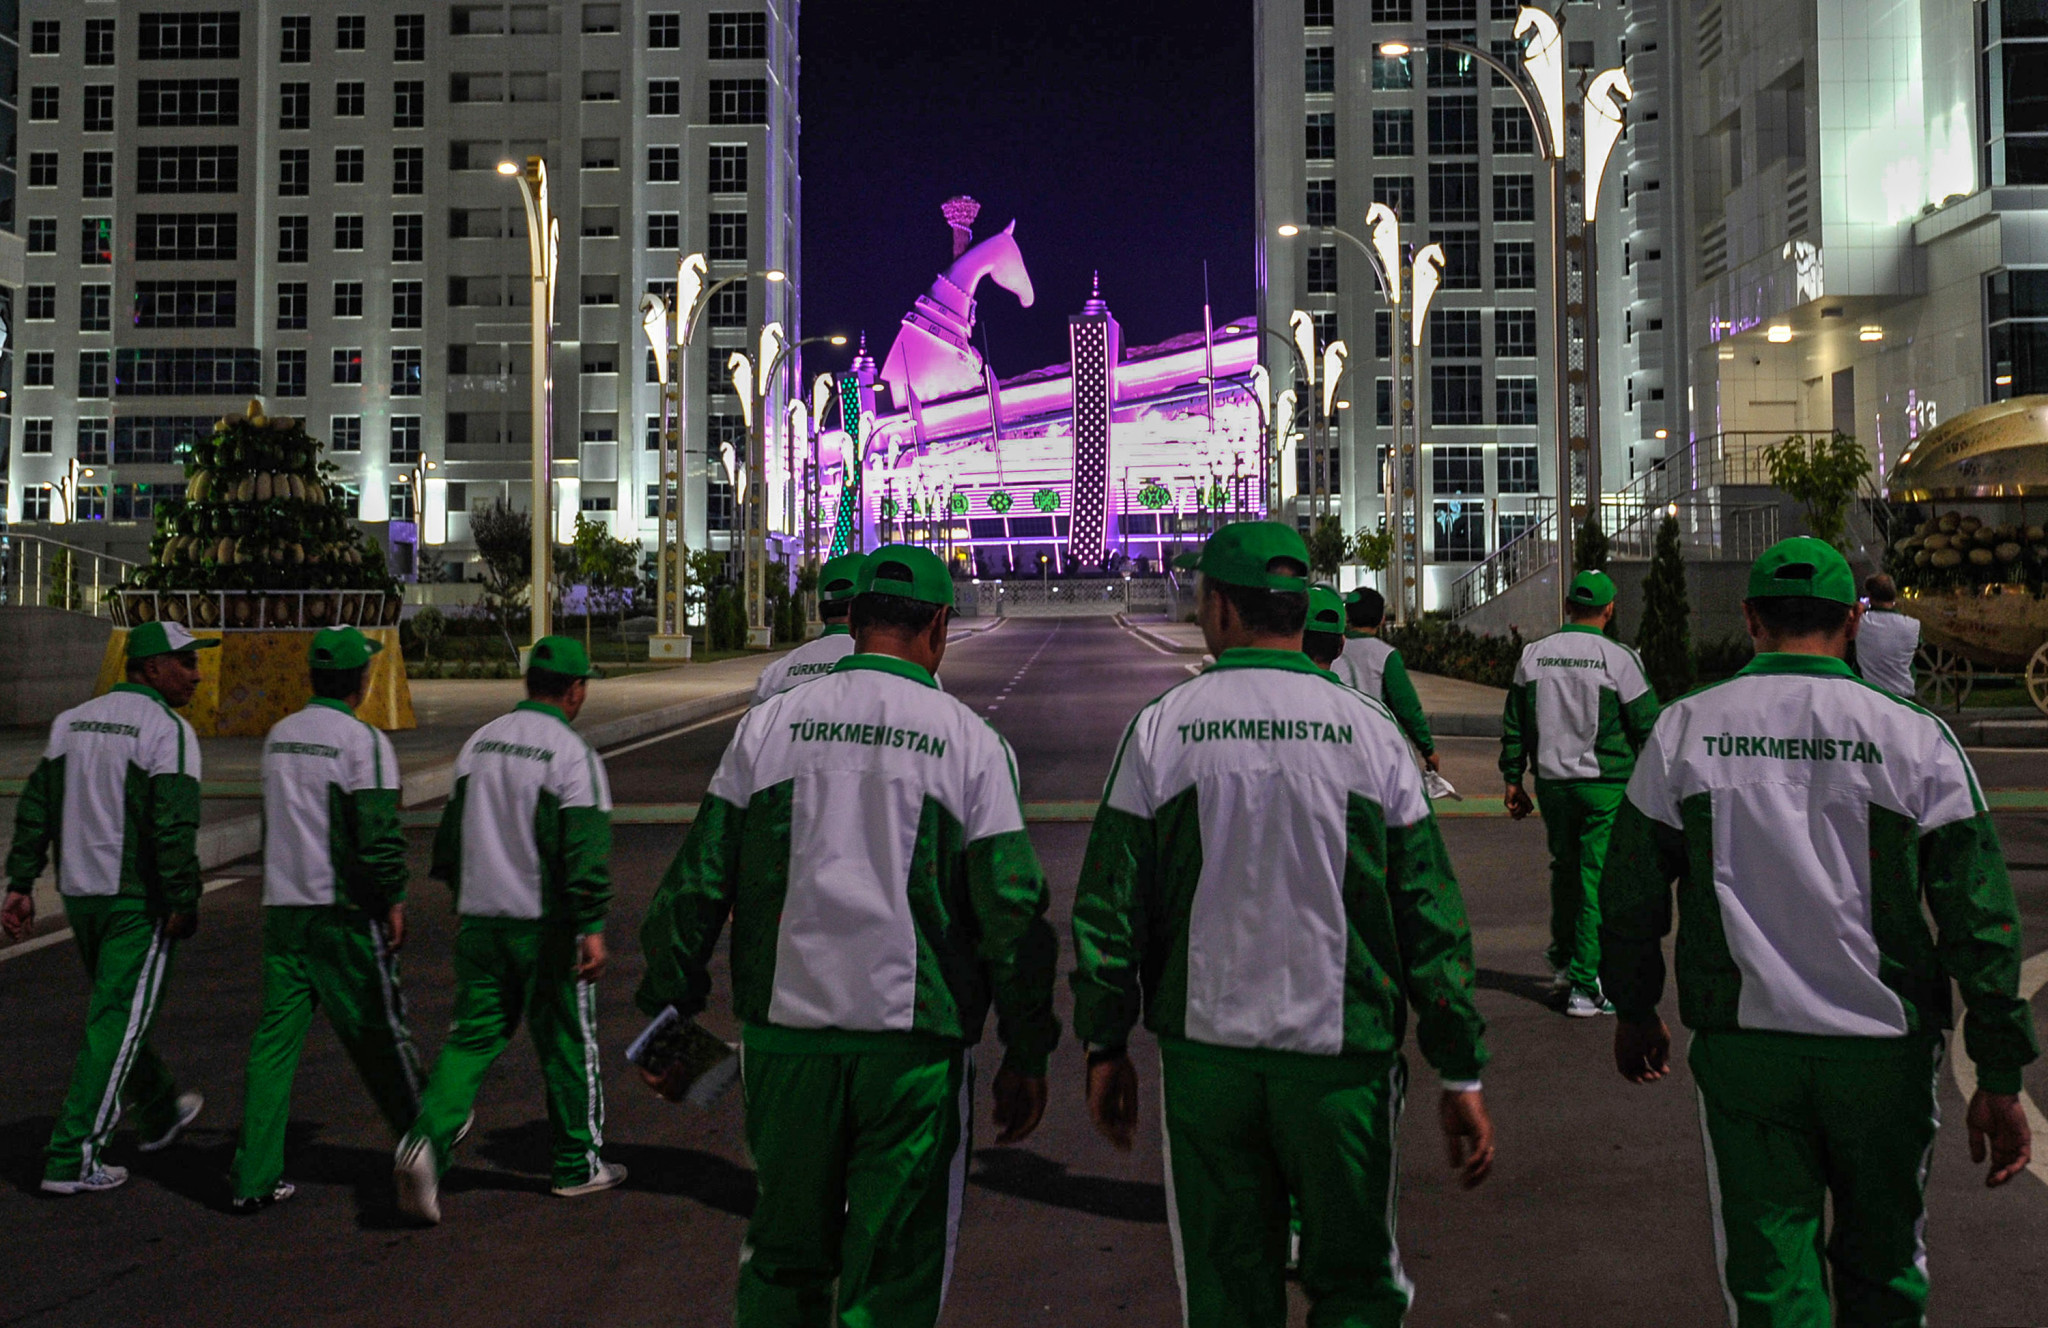 Workers within the Olympic Complex in Ashgabat head towards the Olympic Stadium ©Getty Images